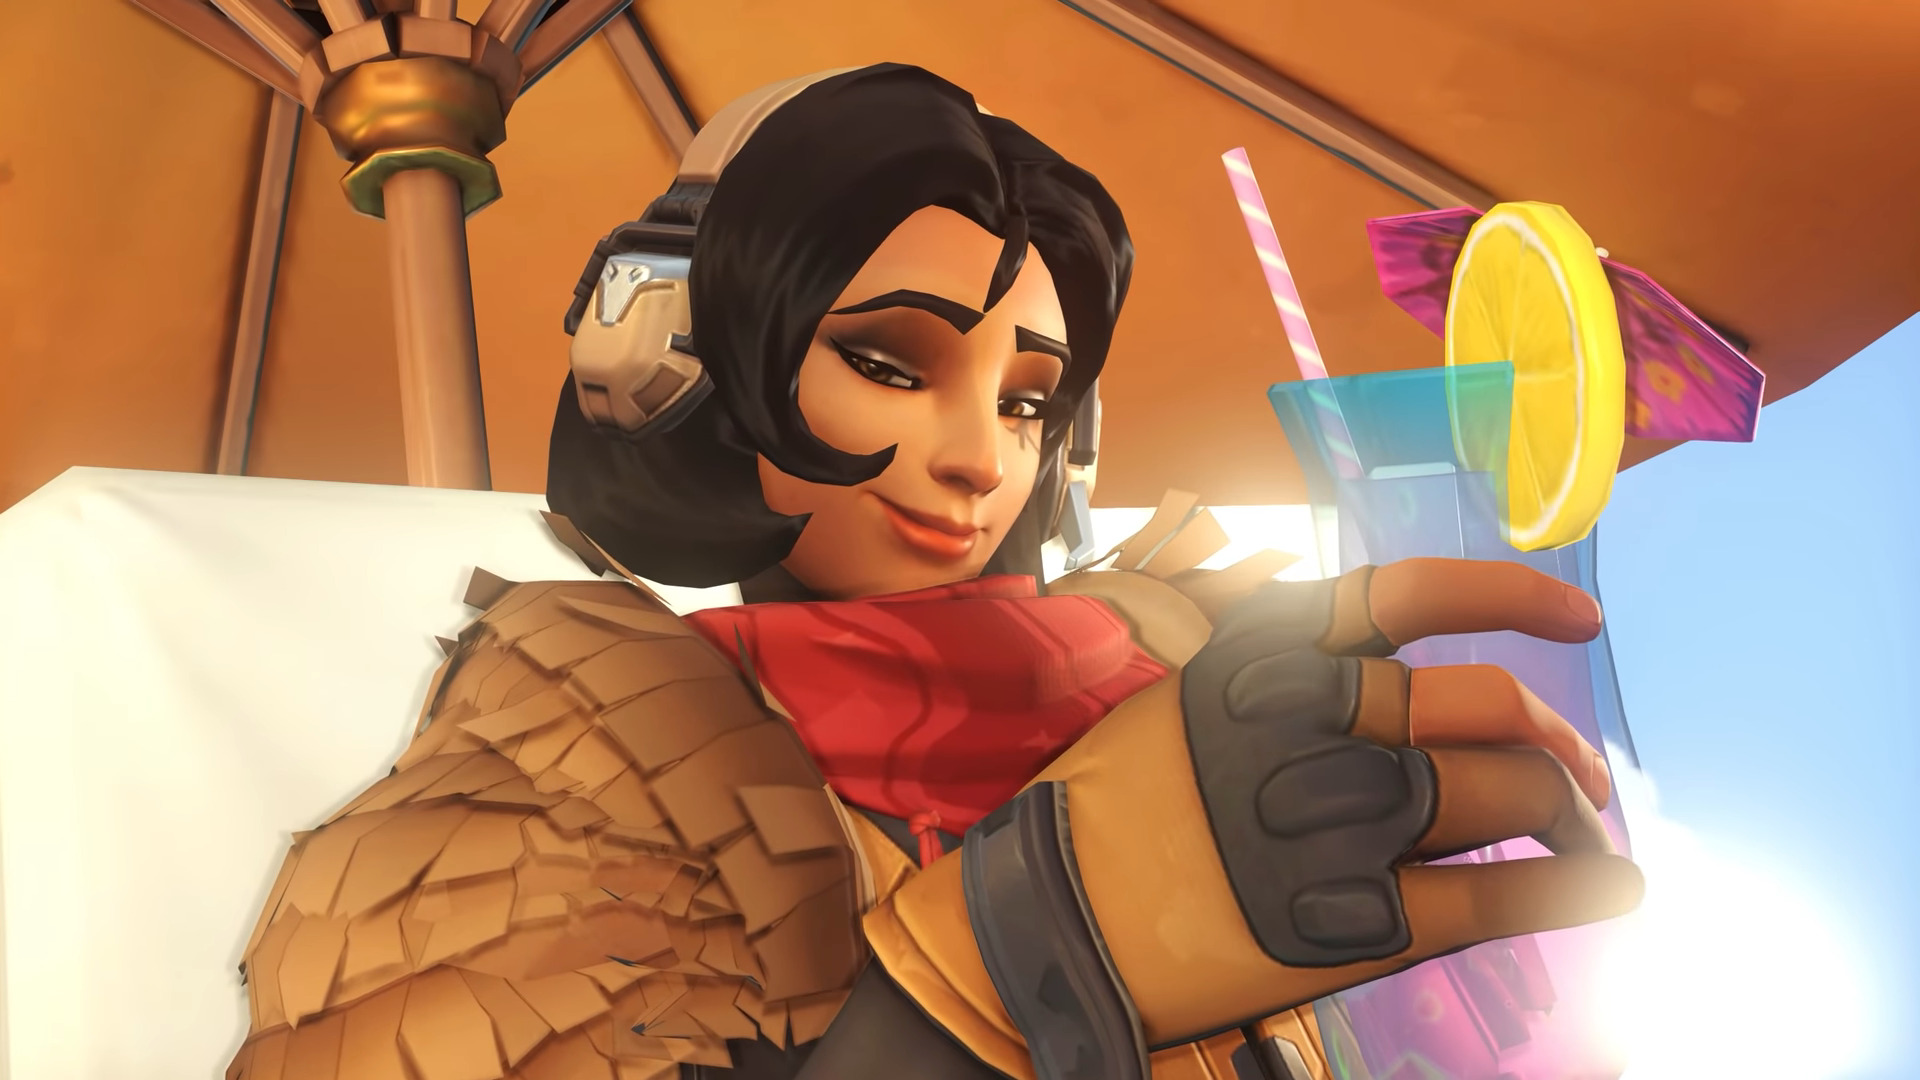 Last Chance For Overwatch 2020 Summer Games Event Skins! – Event Ends On August 25th